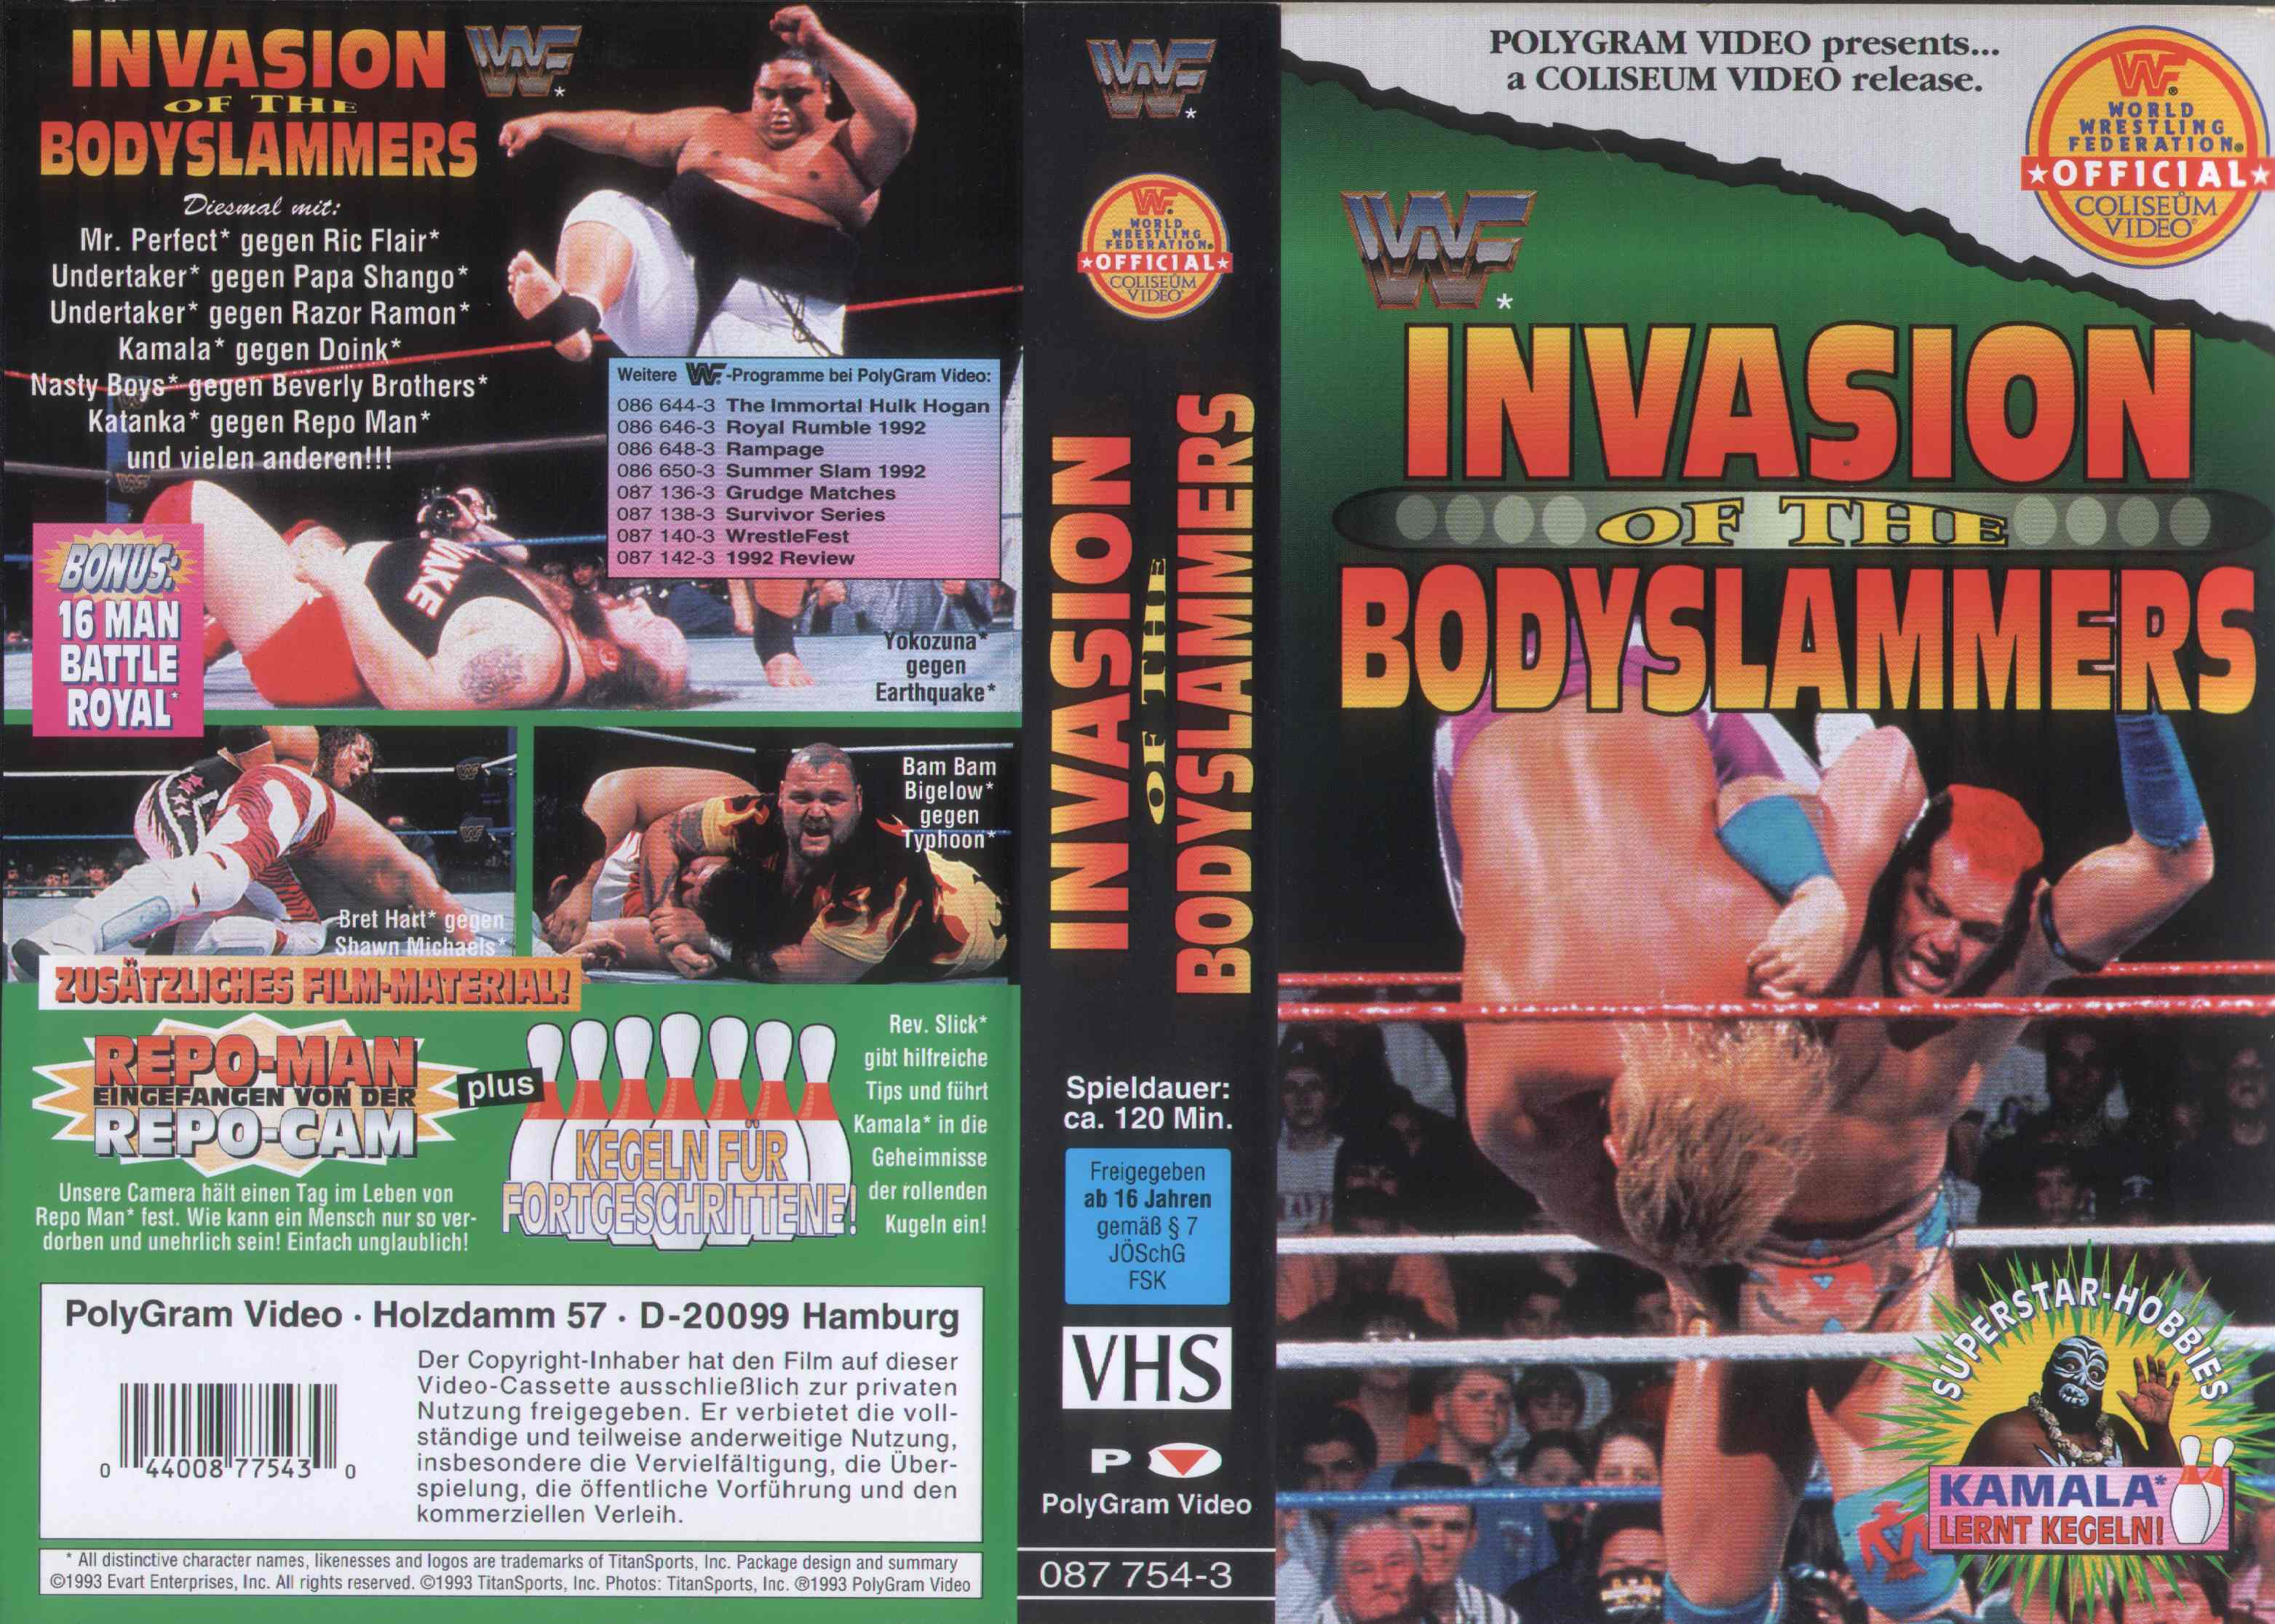 WWF_Invasion_Of_The_Bodyslammers_-_Cover_(1-2)